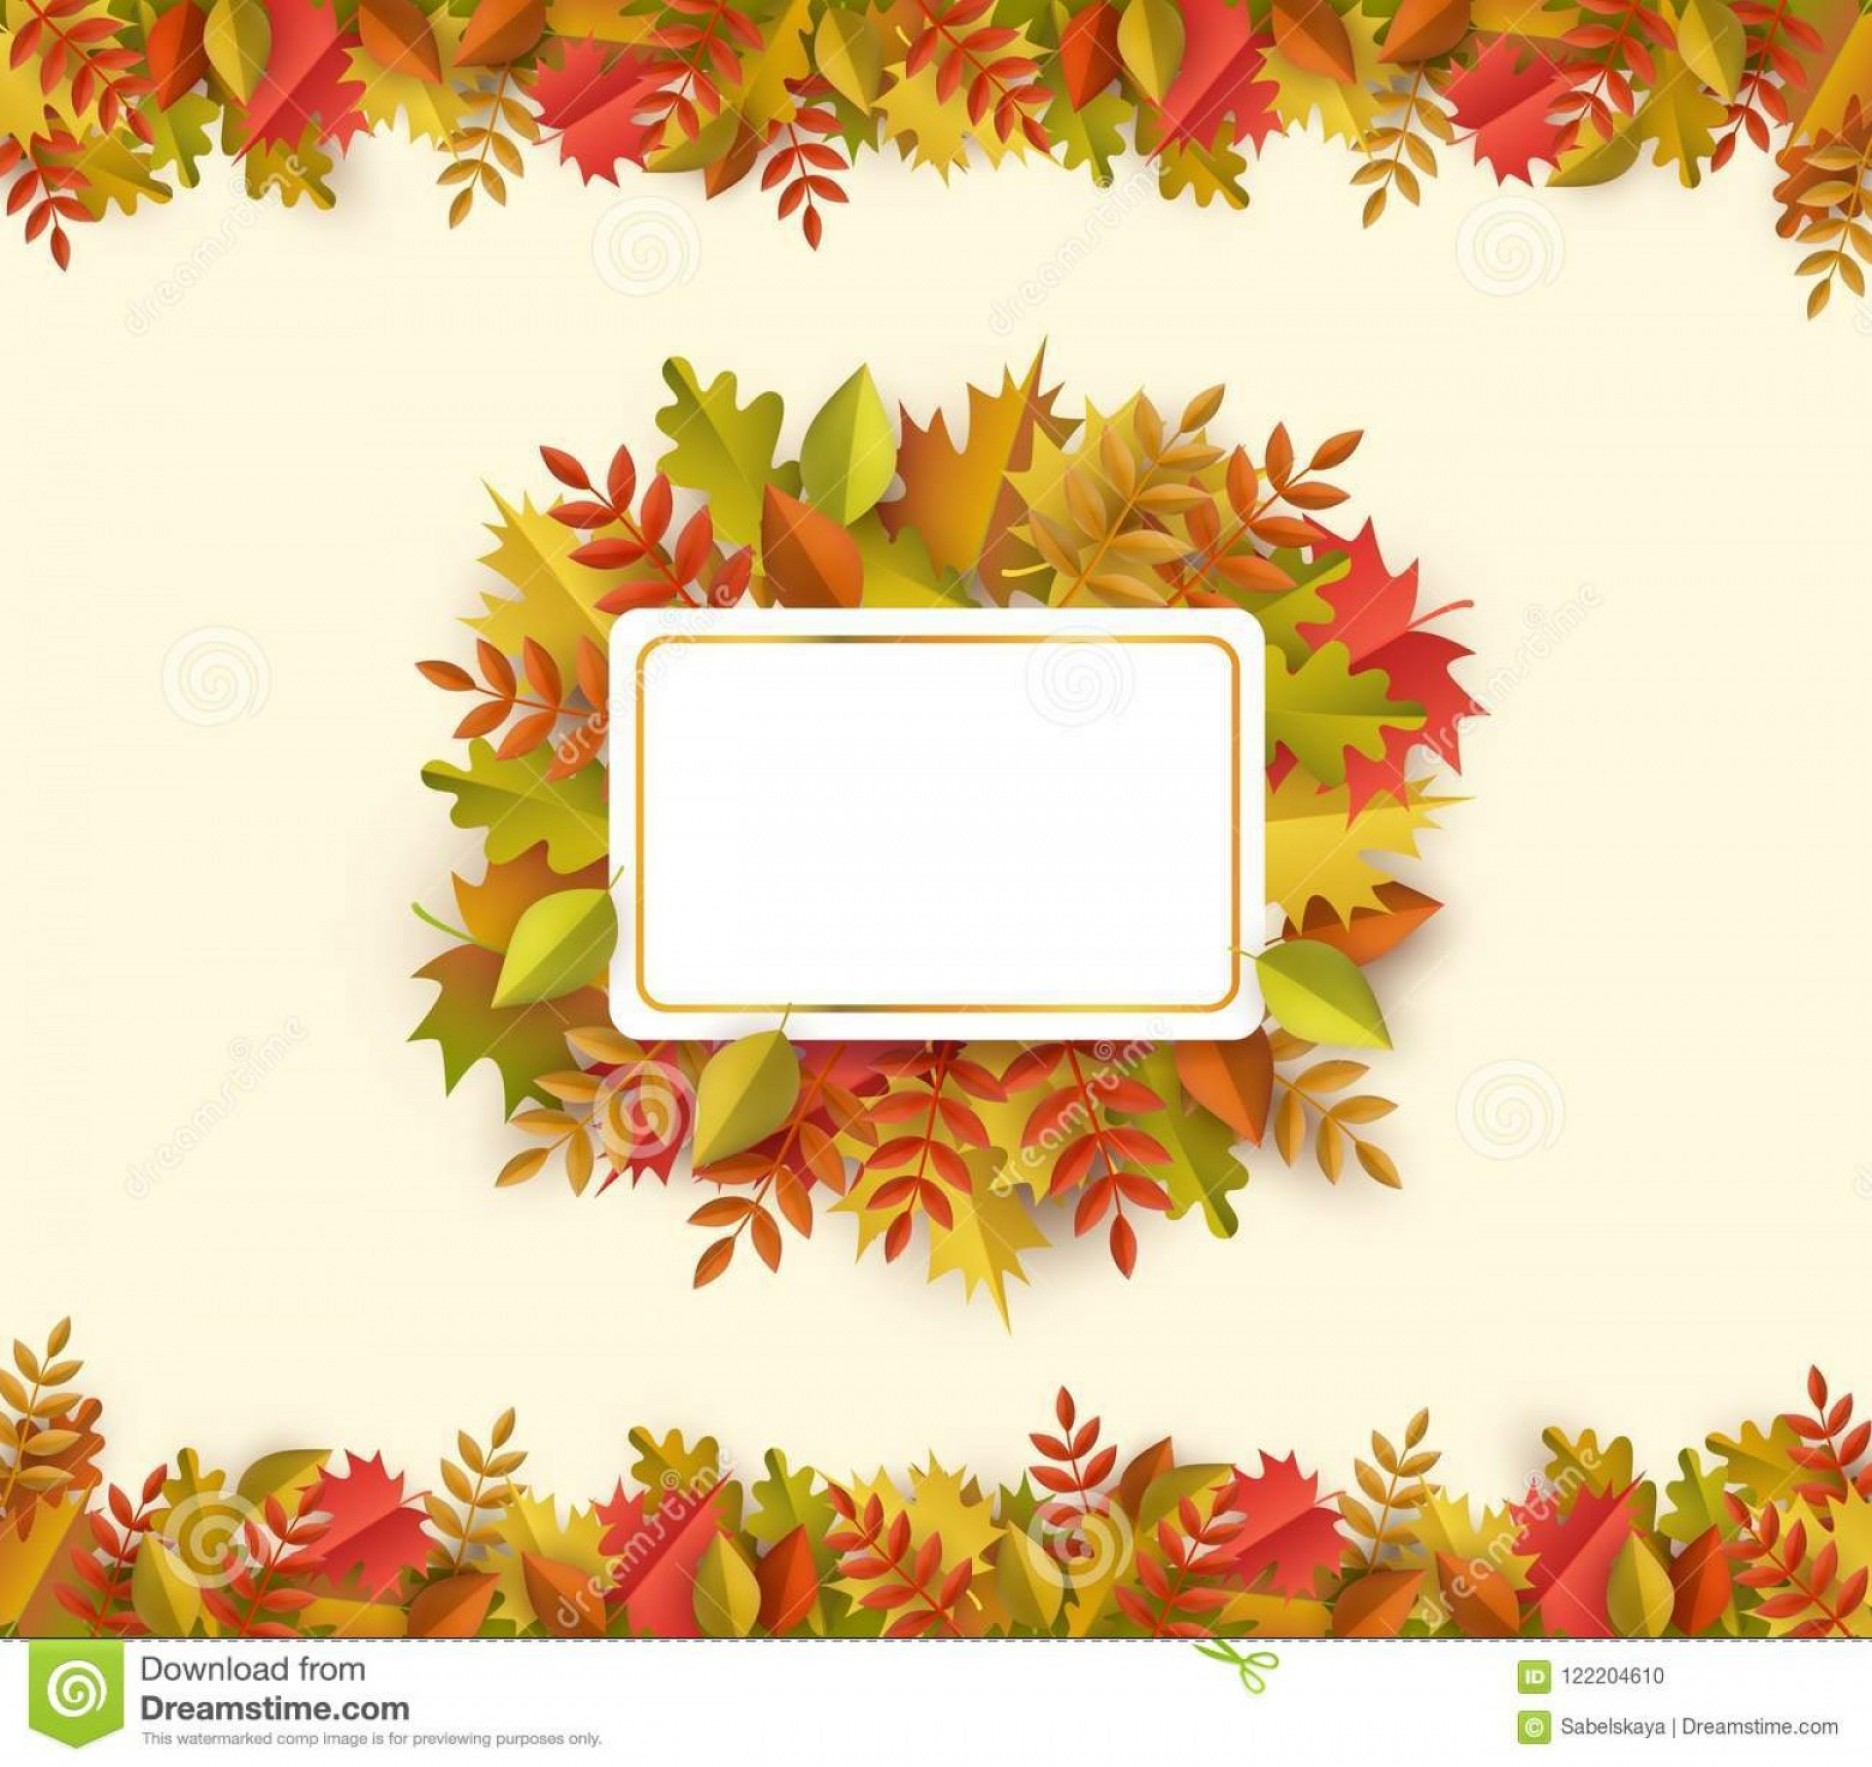 Thanksgiving Border Vector: Autumn Leaves Square Border Frame Background Space Text Seasonal Floral Maple Oak Tree Orange Leaves Thanksgiving Holiday Image